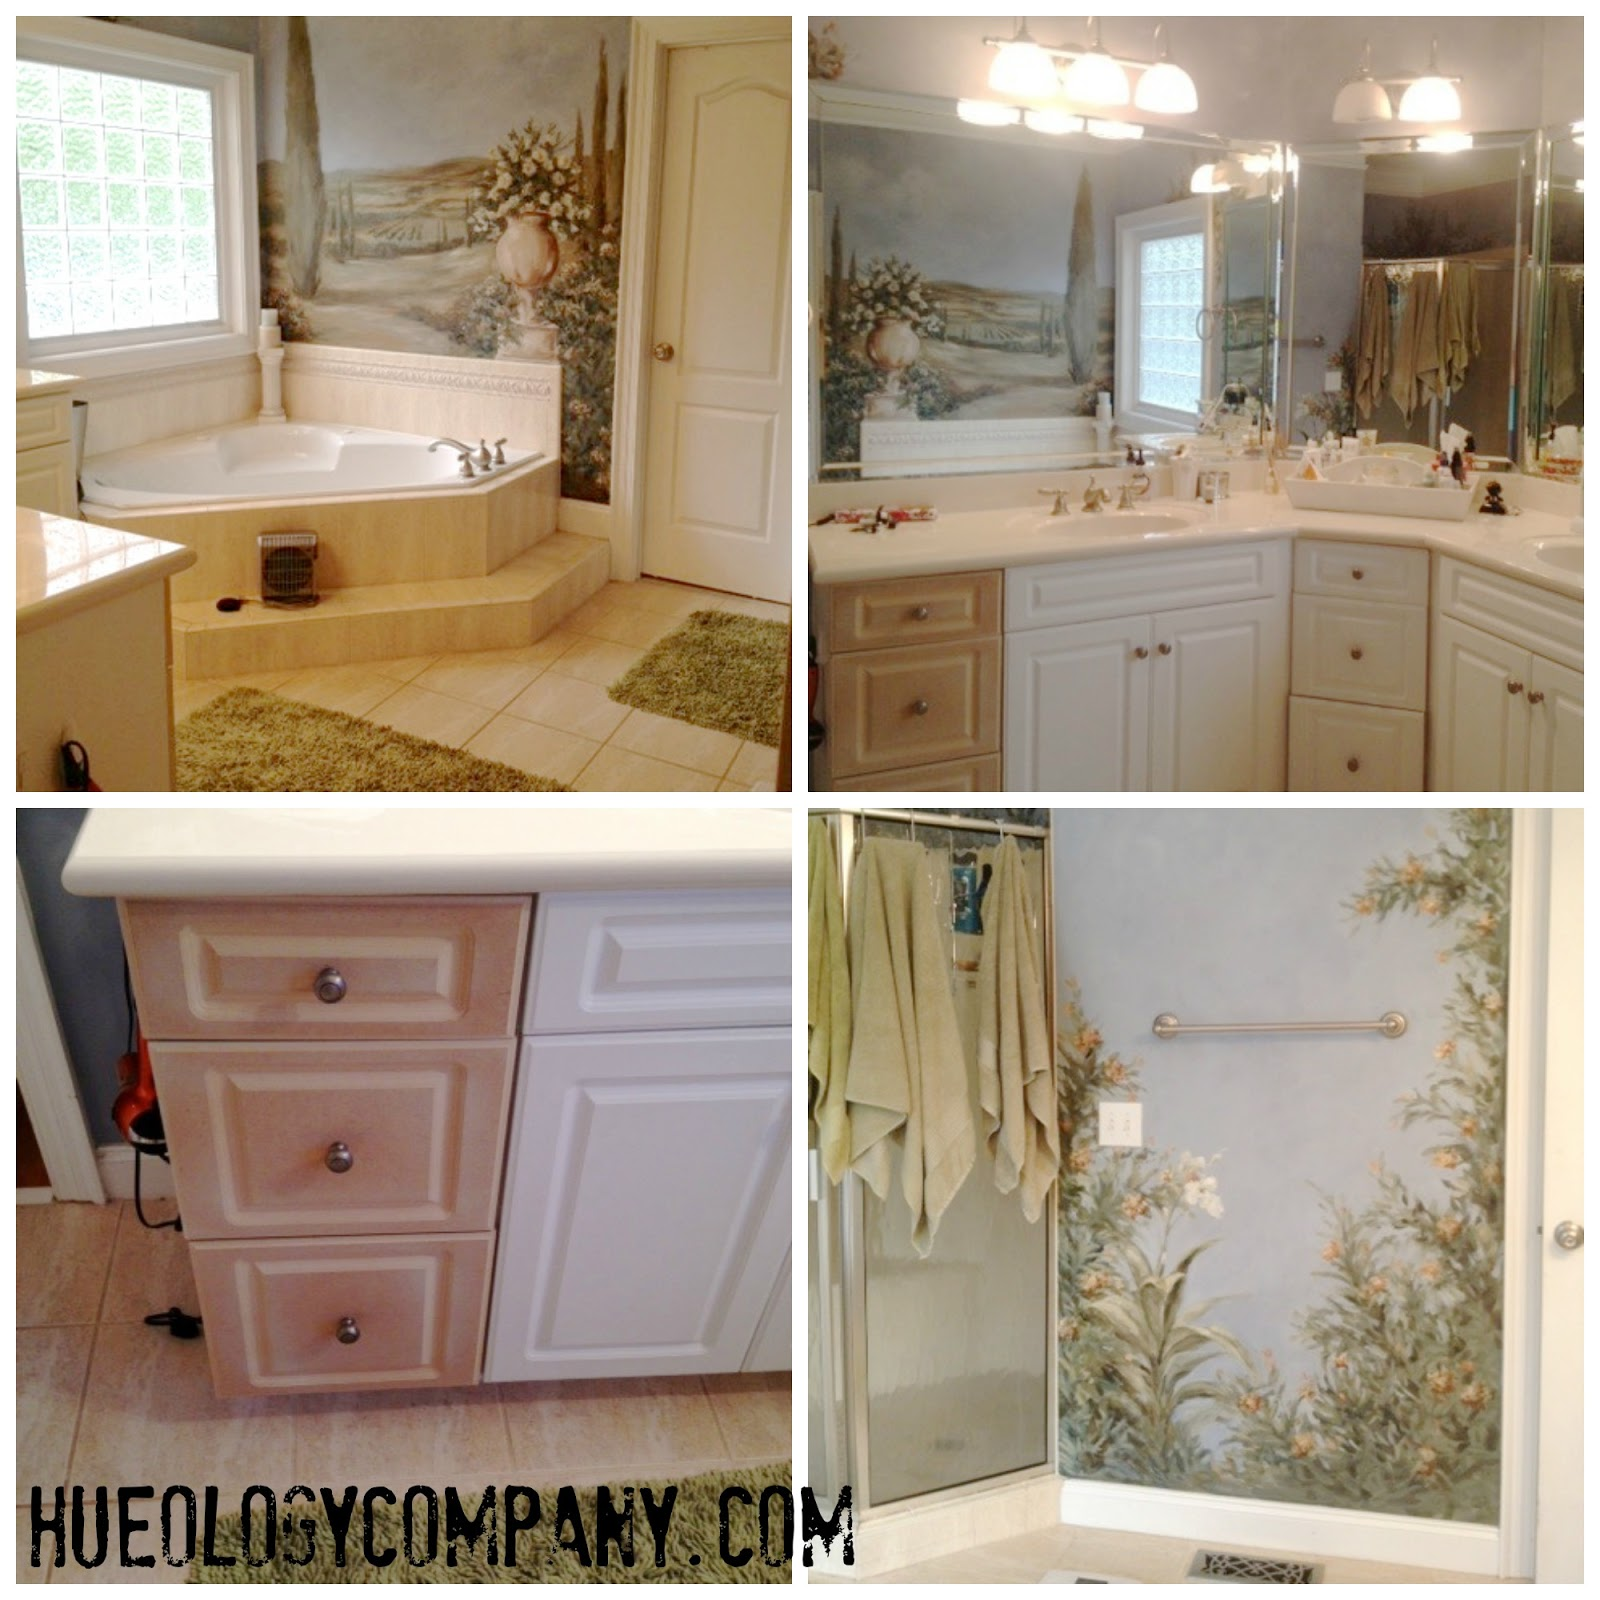 painting bathroom cabinets master bath makeover - Bathroom Cabinets Before And After